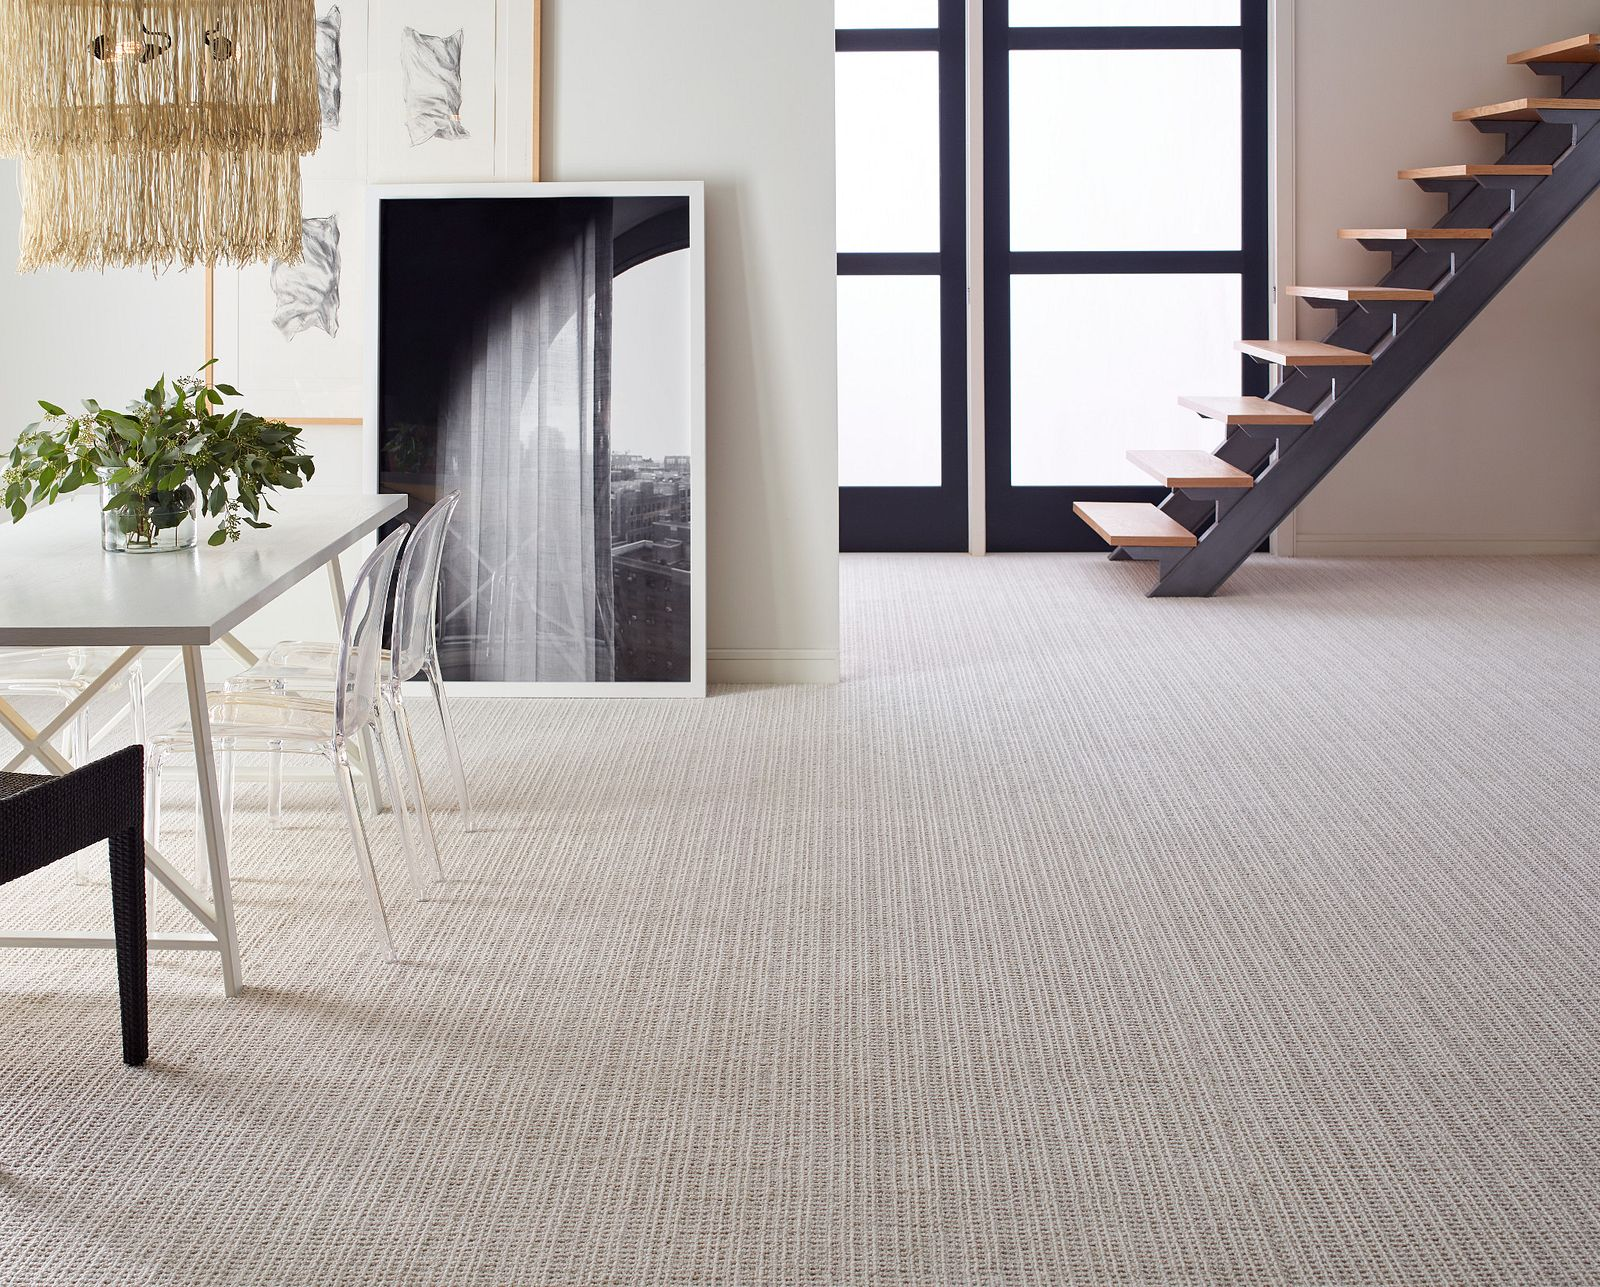 Shaw Carpet Collection The Stories Behind Shaw Carpets Shaw Floors